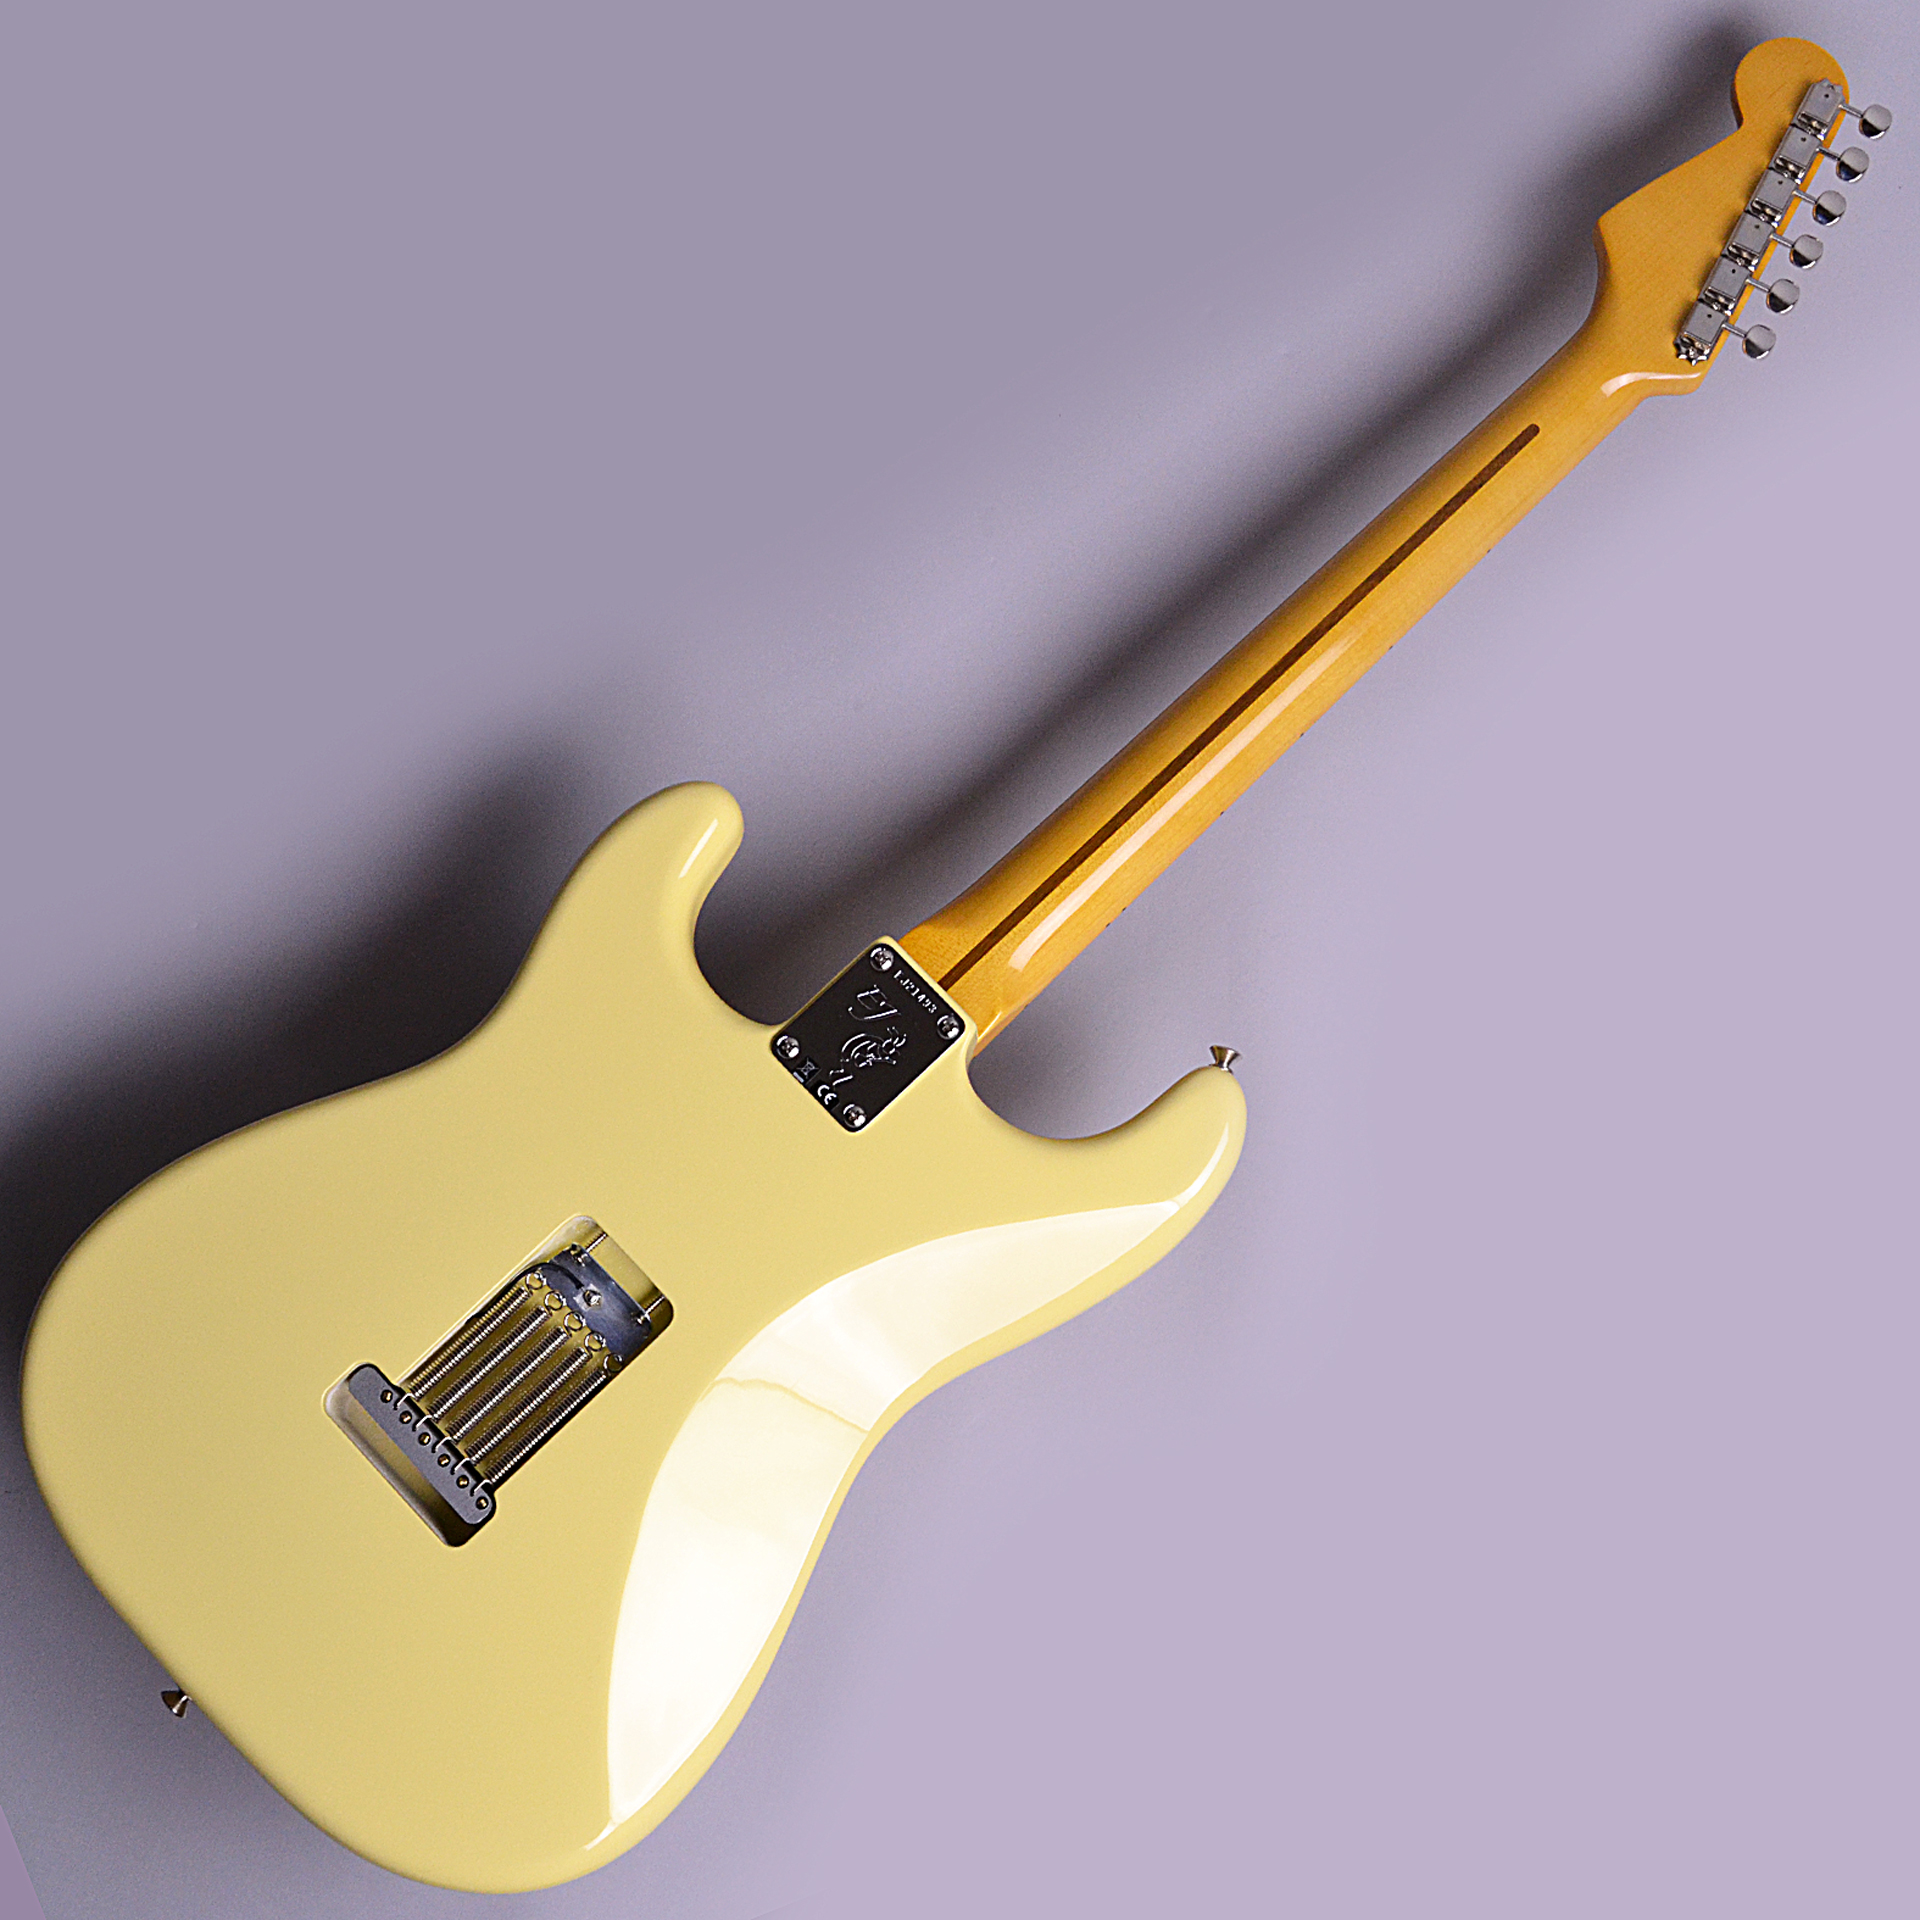 Eric Johnson Signature Thinline Stratocasterのボディバック-アップ画像